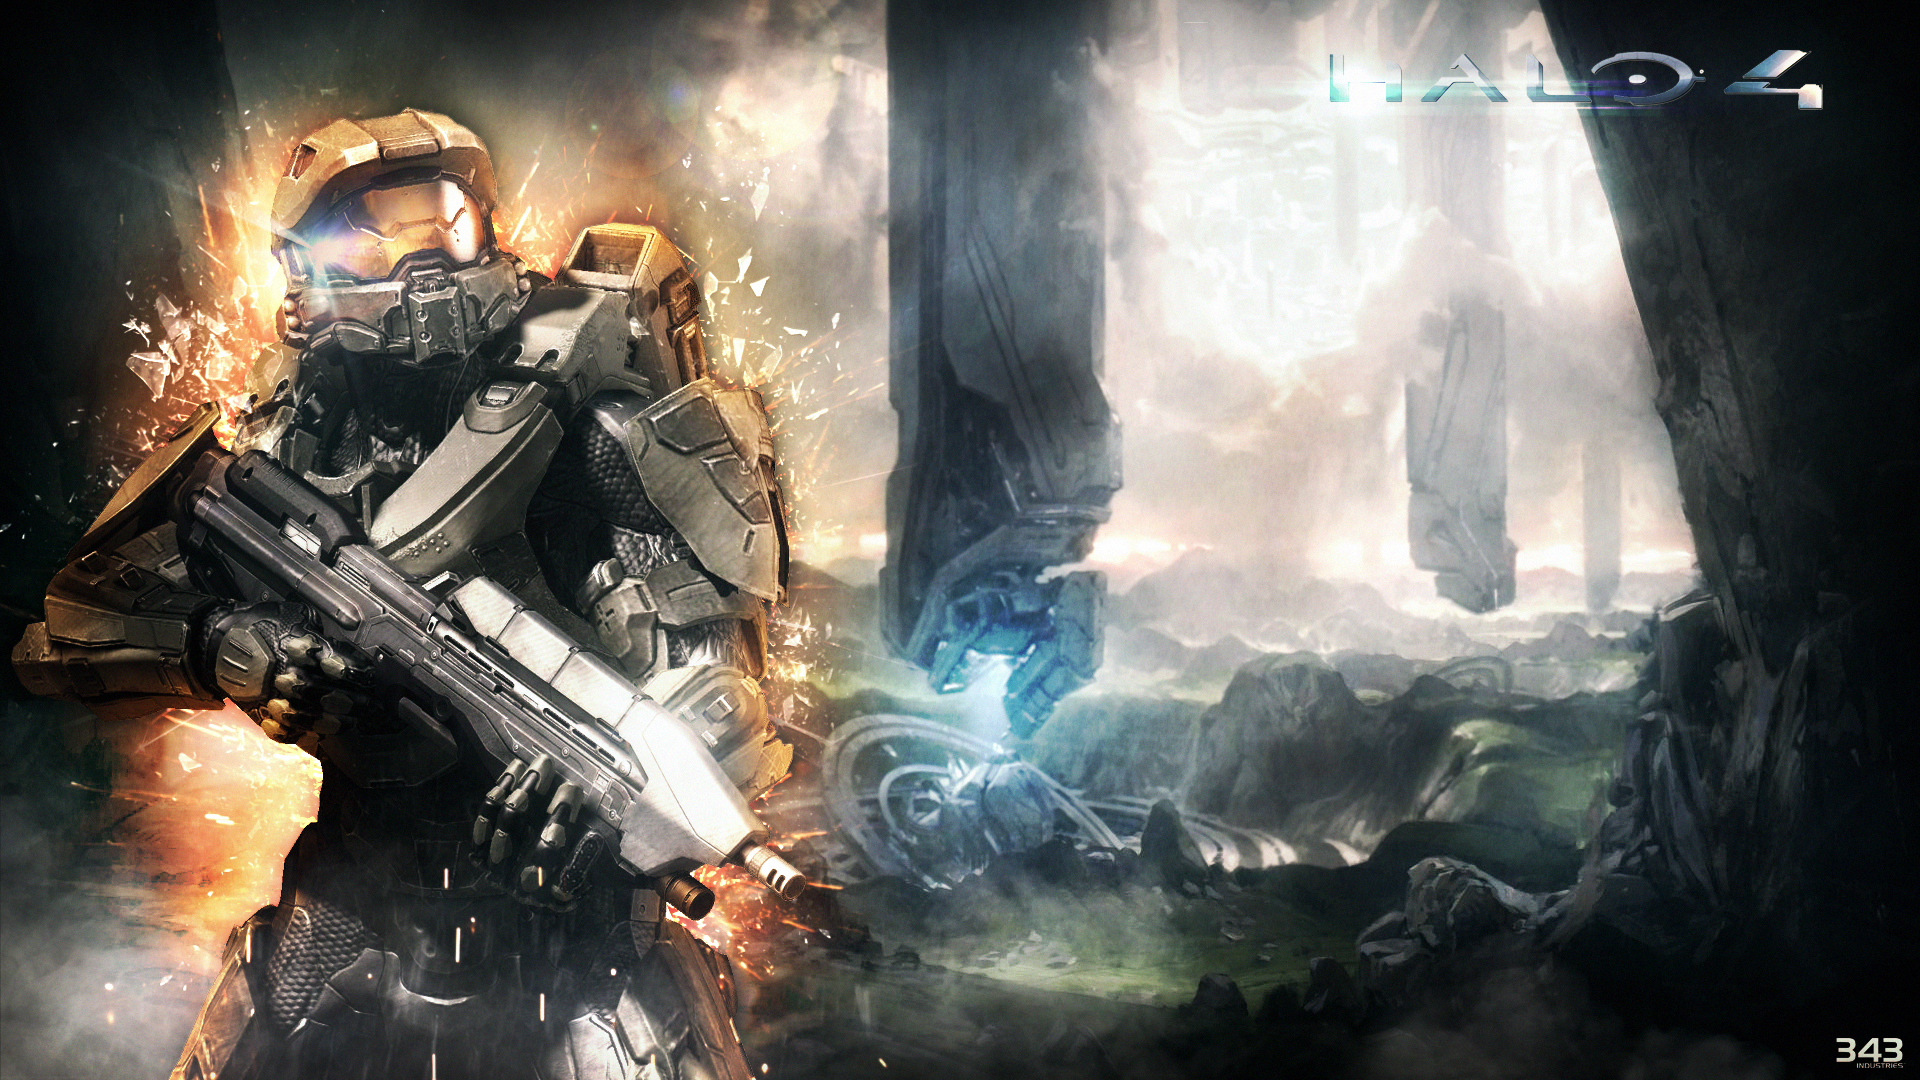 Wallpaper ~ Halo 4 by Mackaged